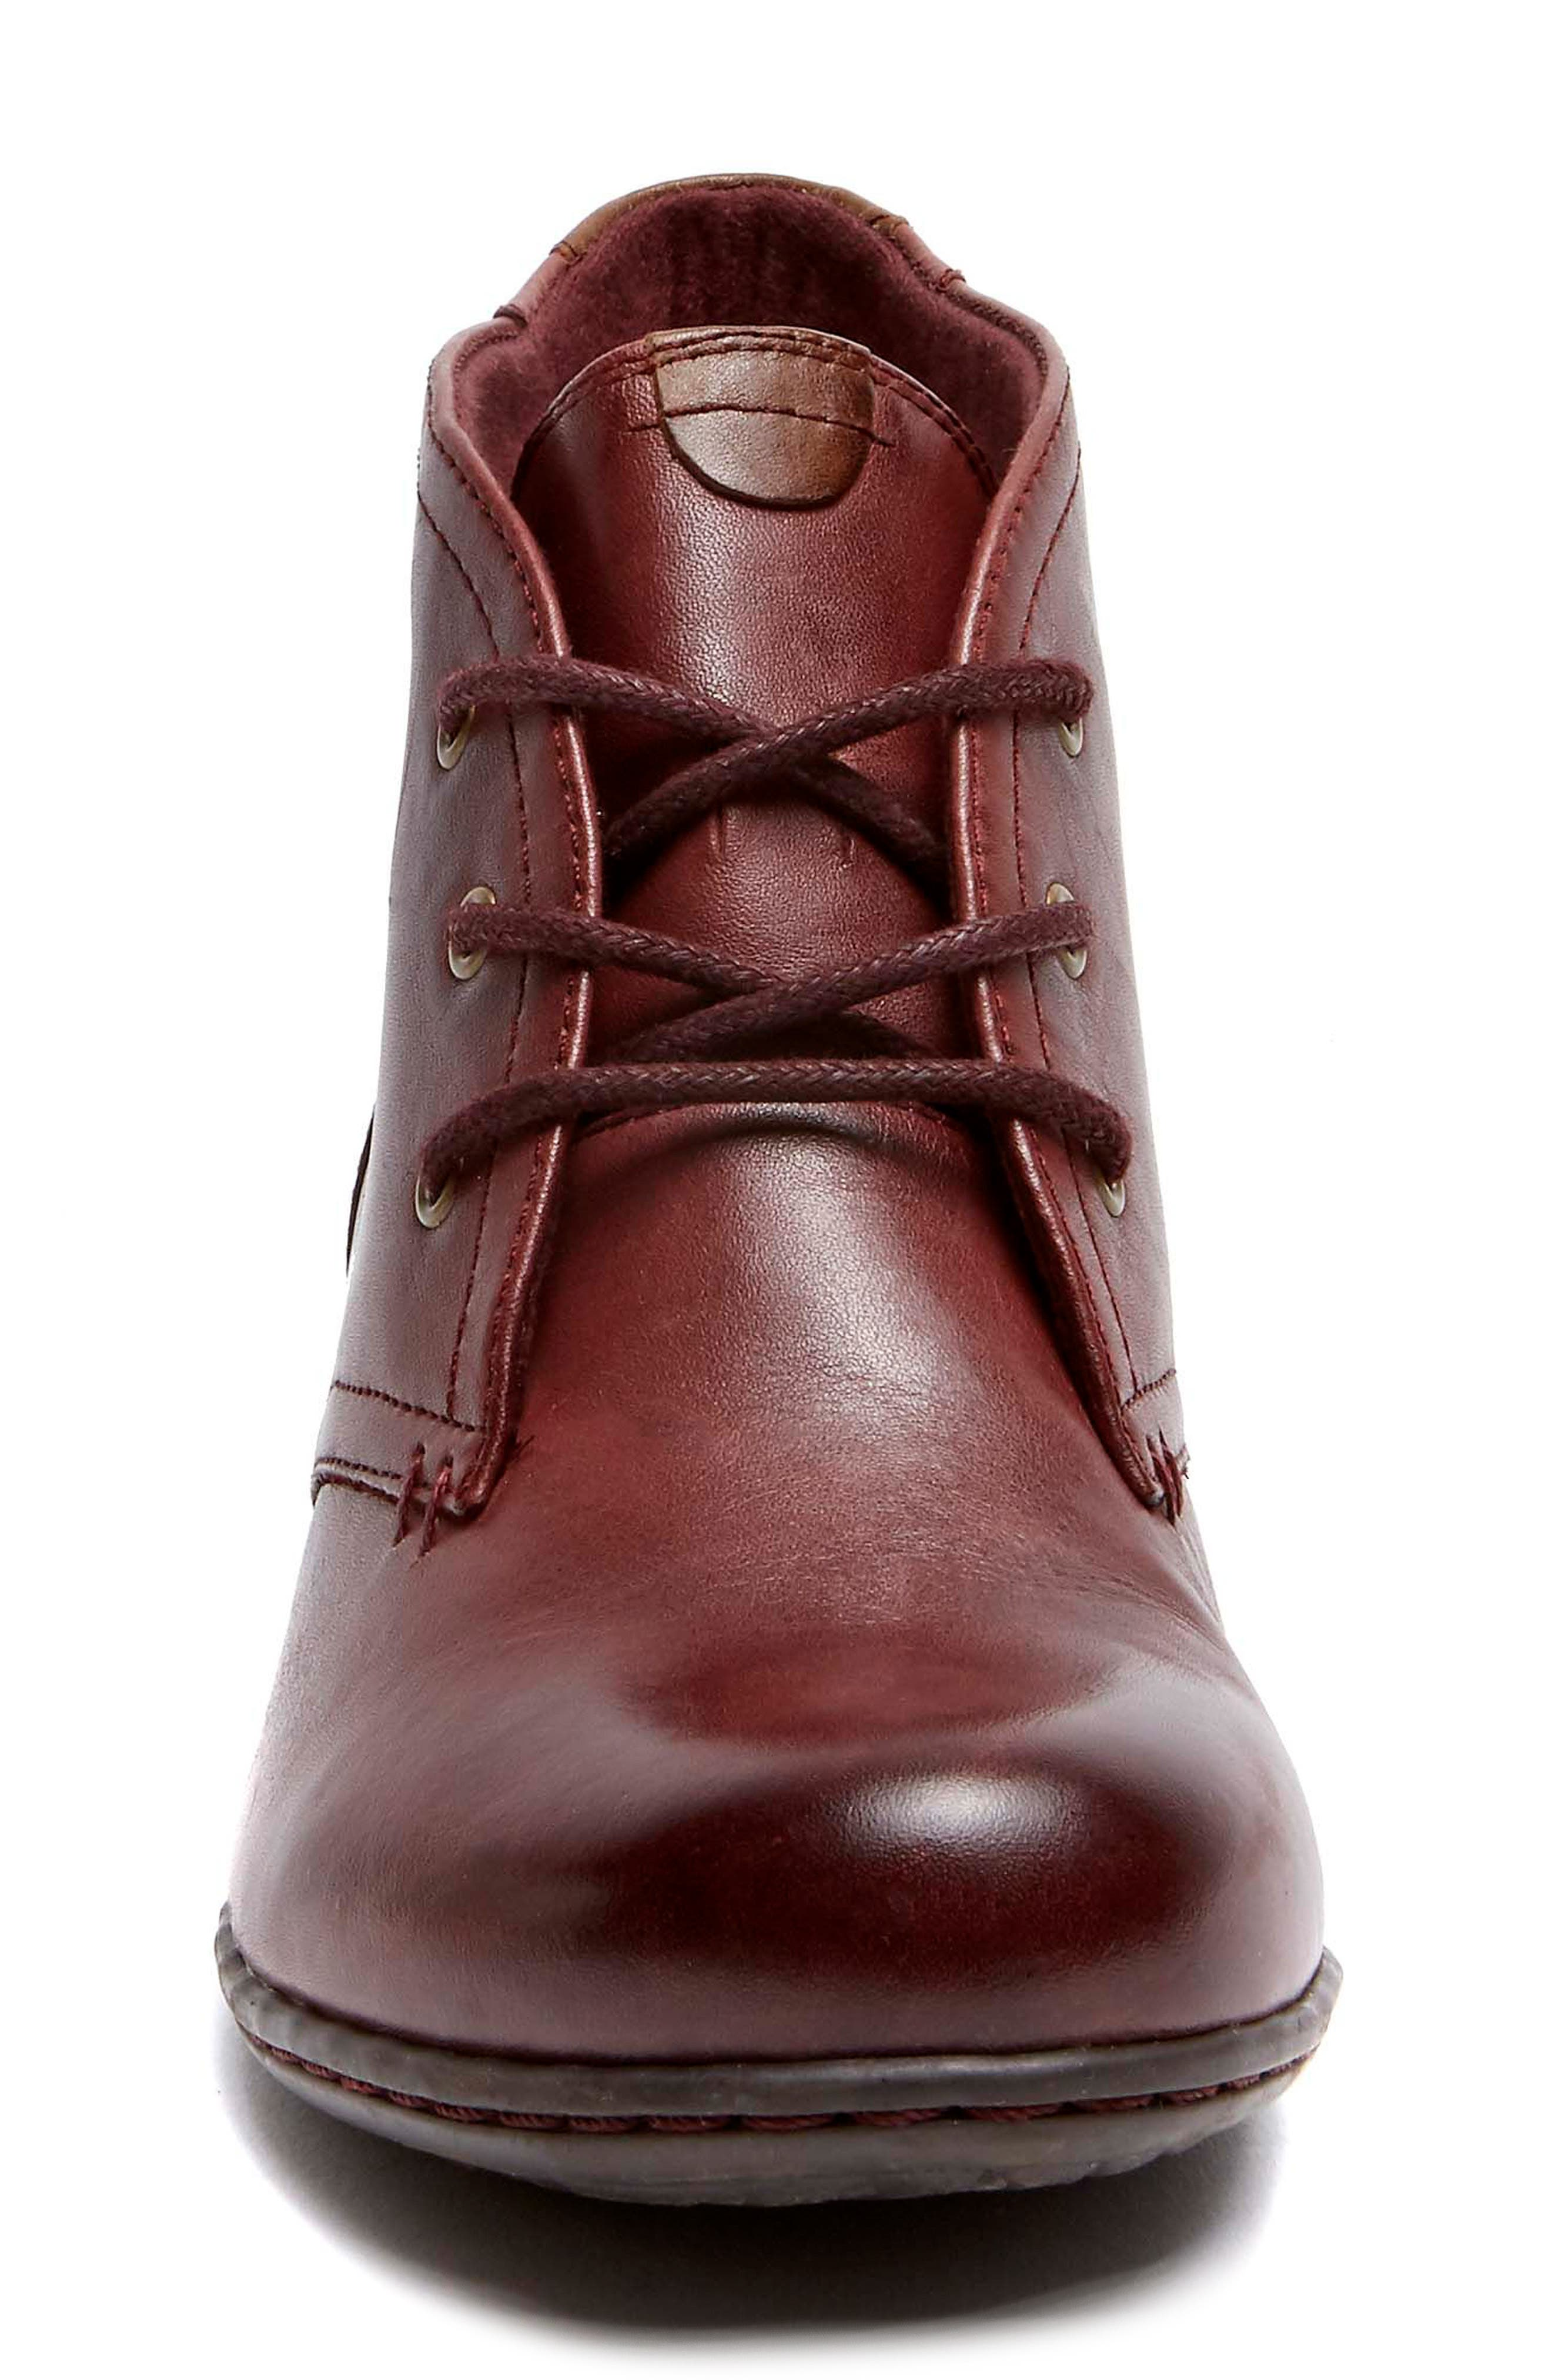 Aria Leather Boot,                             Alternate thumbnail 4, color,                             MERLOT LEATHER